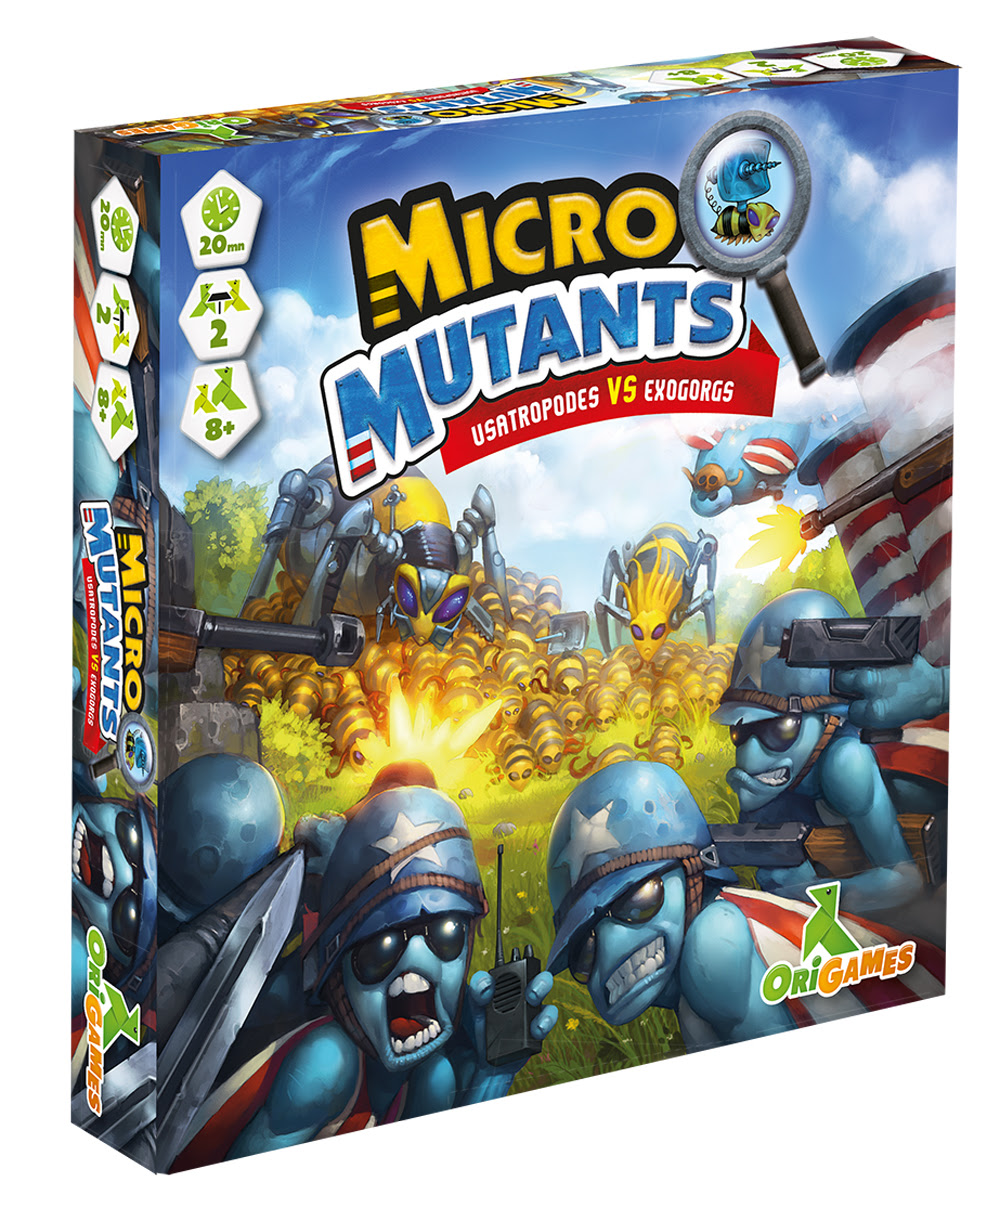 Micro-Mutant-bleu-box_product_big2